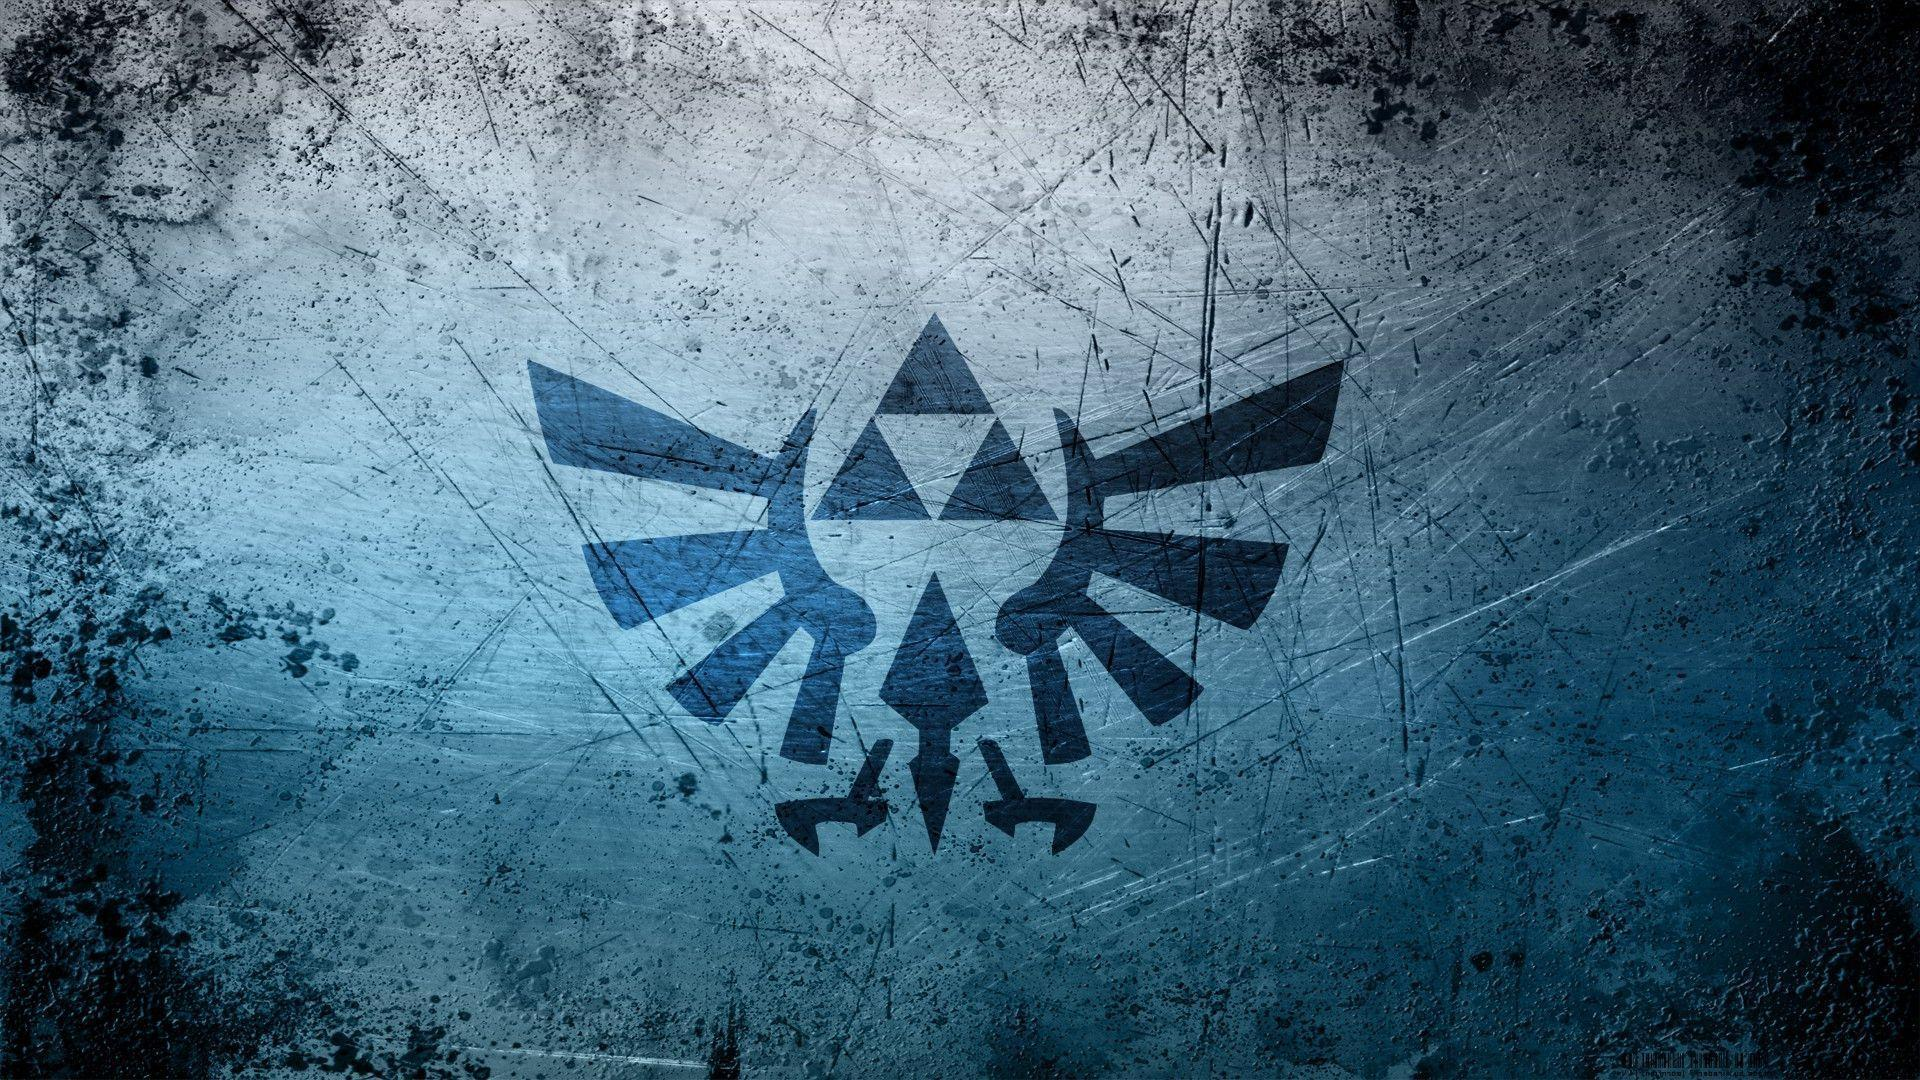 Hd wallpaper zelda - Triforce The Legend Of Zelda Wallpaper The Legend Of Zelda